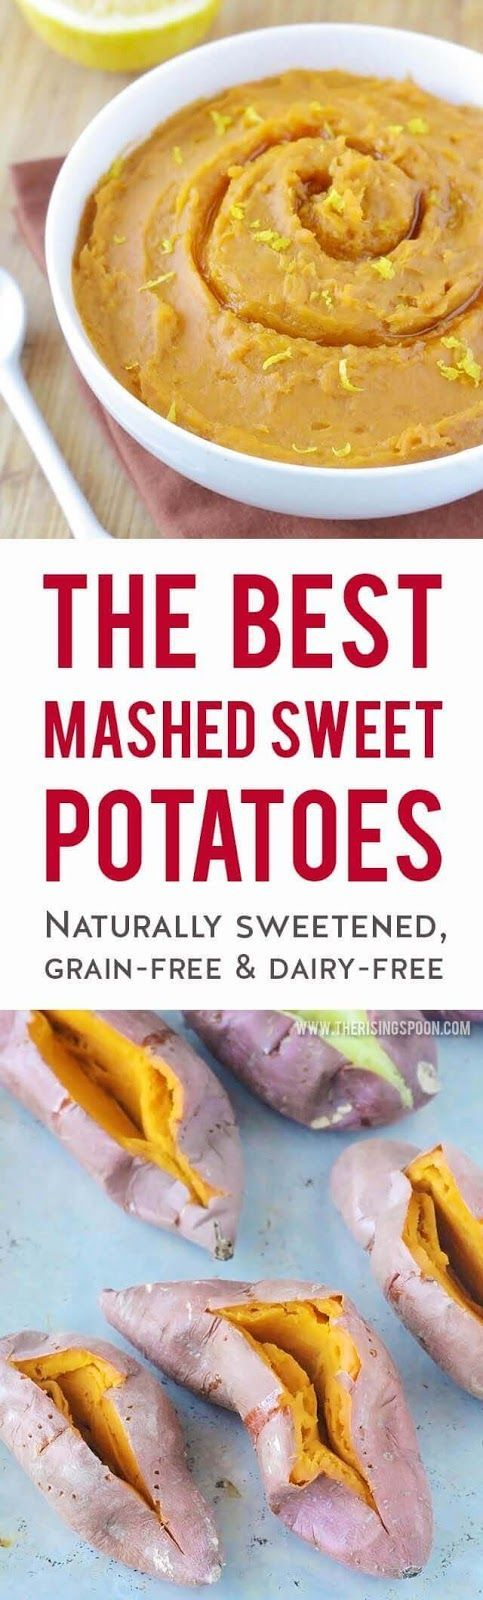 This is the best method for fixing mashed sweet potatoes! It brings out the potato's natural sweetness with hardly any work. You'll be tempted to eat it with a sprinkle of sea salt (yes, it's that good!), but it's even better with fresh orange zest, a bit of maple syrup & warm spices. Fix this healthy side dish recipe all year long when you're craving easy comfort food. | real food recipes | dairy-free | gluten-free | grain-free | vegan | Thanksgiving recipes | holiday recipes |